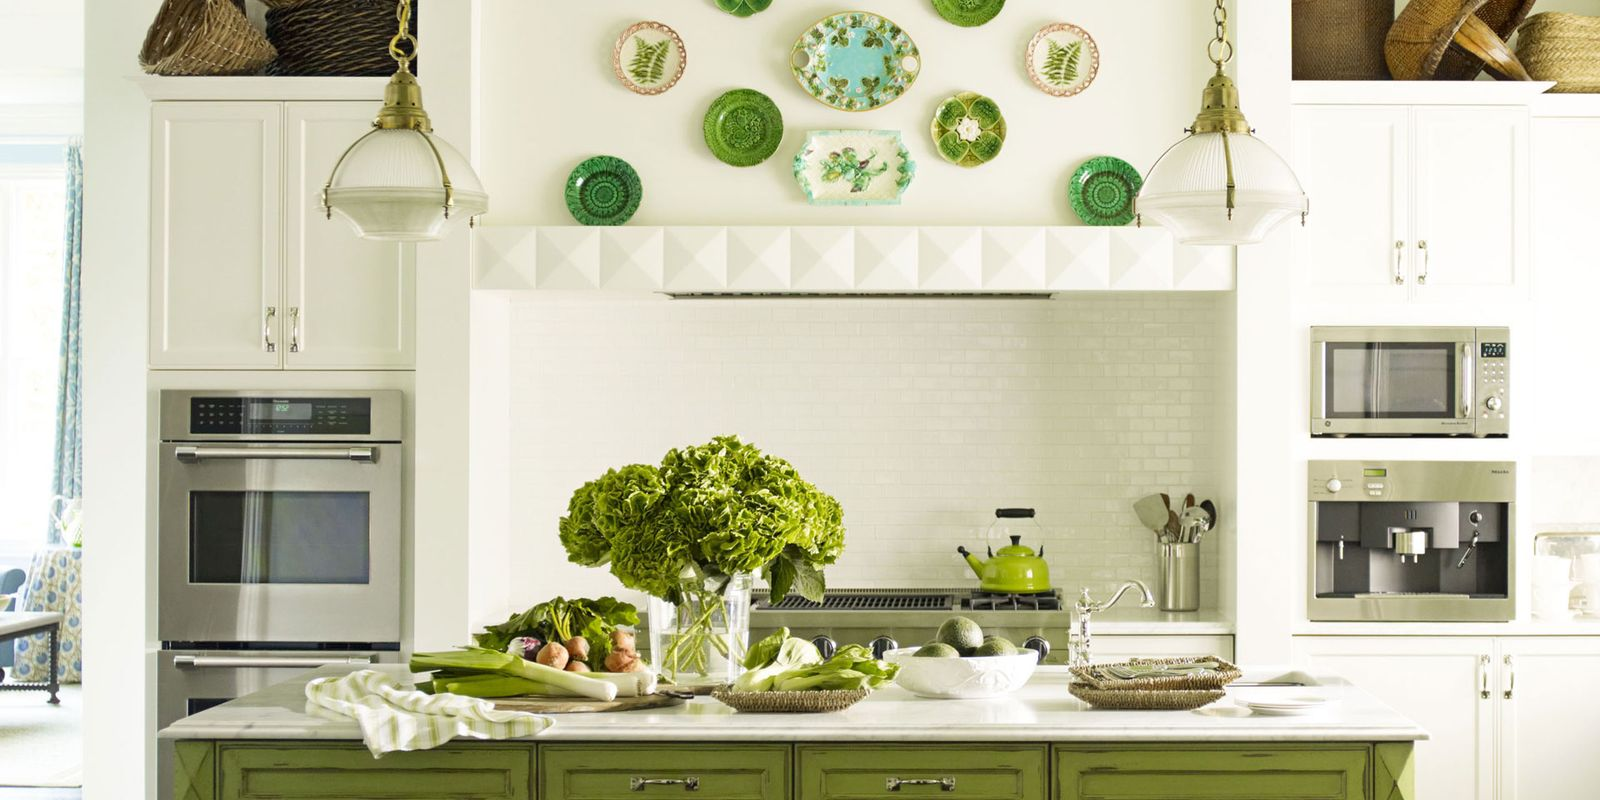 Green Kitchen Design Ideas ~ Green kitchens ideas for kitchen design